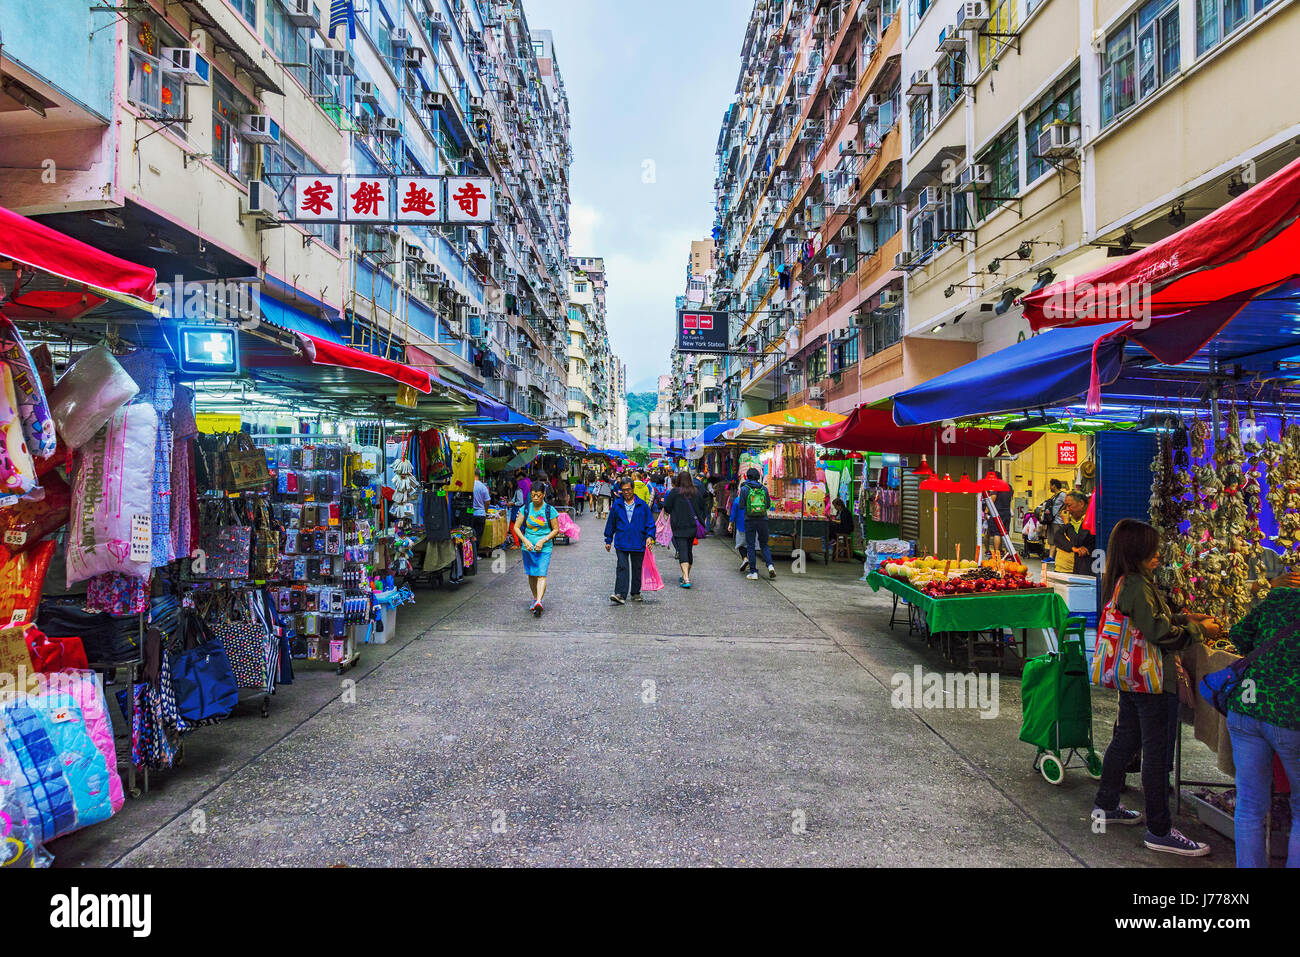 HONG KONG, CHINA - APRIL 27: This is Fa Yuen street market a busy local street market which is also popular with - Stock Image